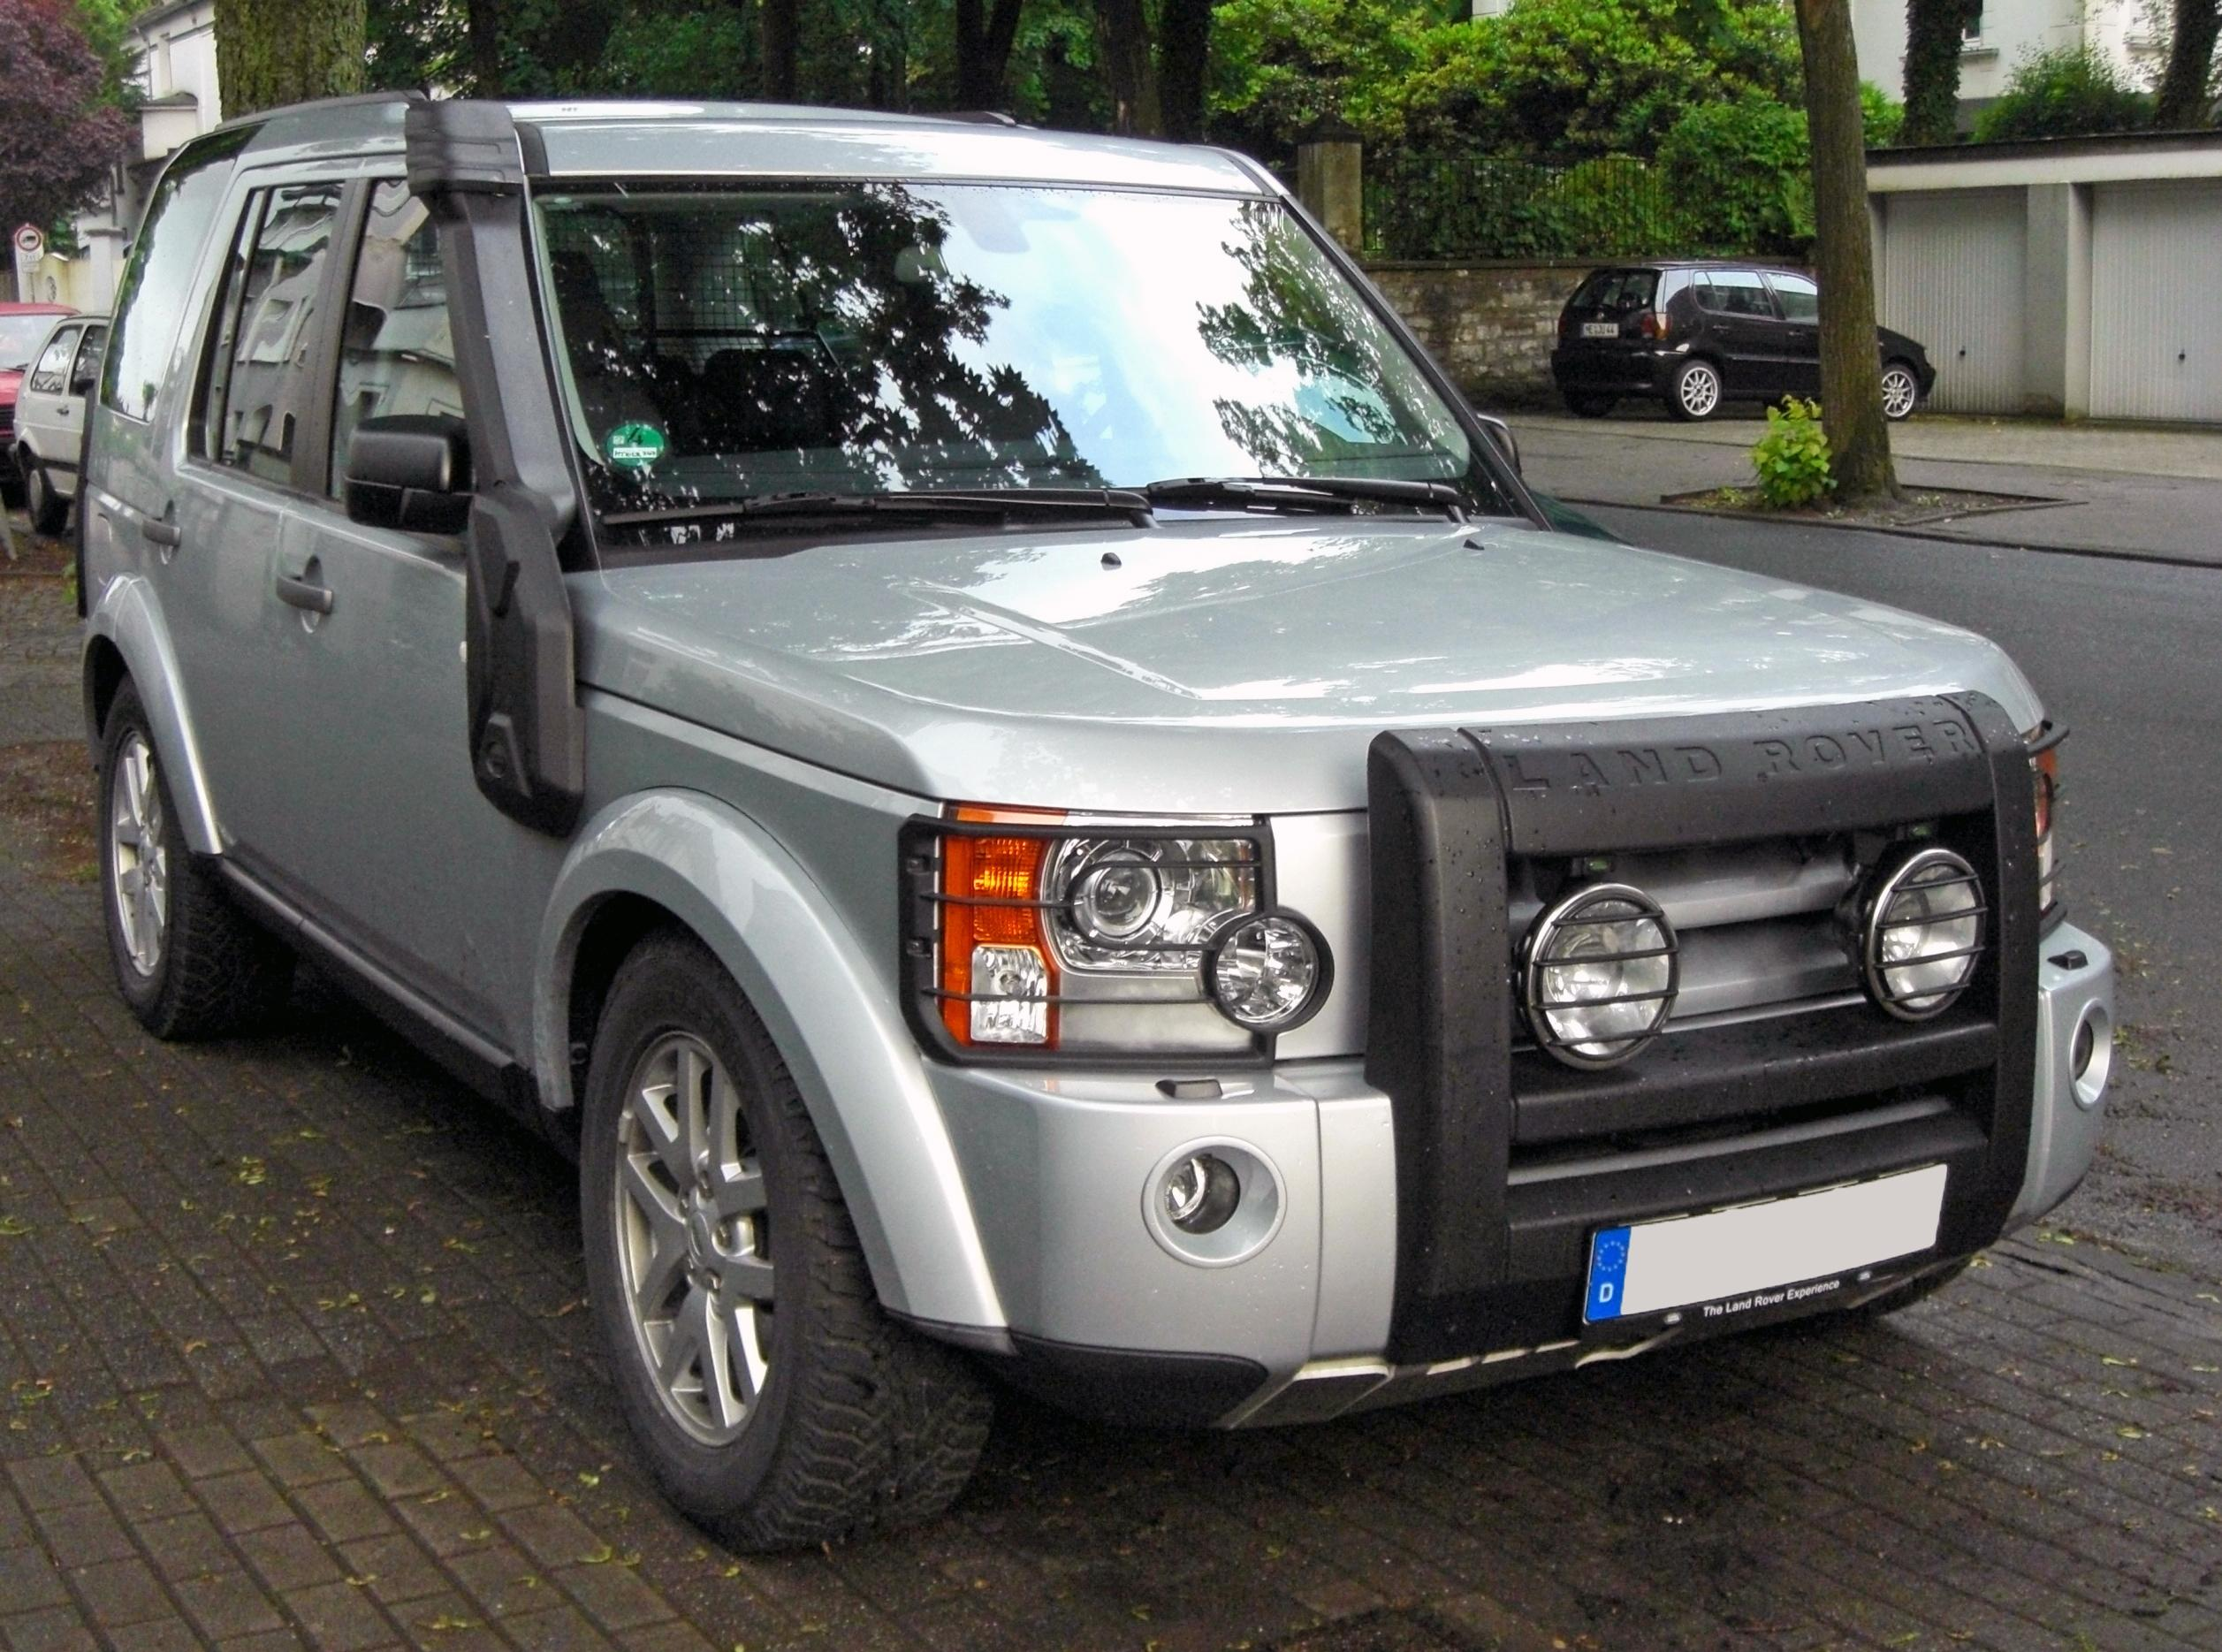 https://upload.wikimedia.org/wikipedia/commons/f/ff/Land_Rover_Discovery_III_TDV6_20090611_front.JPG